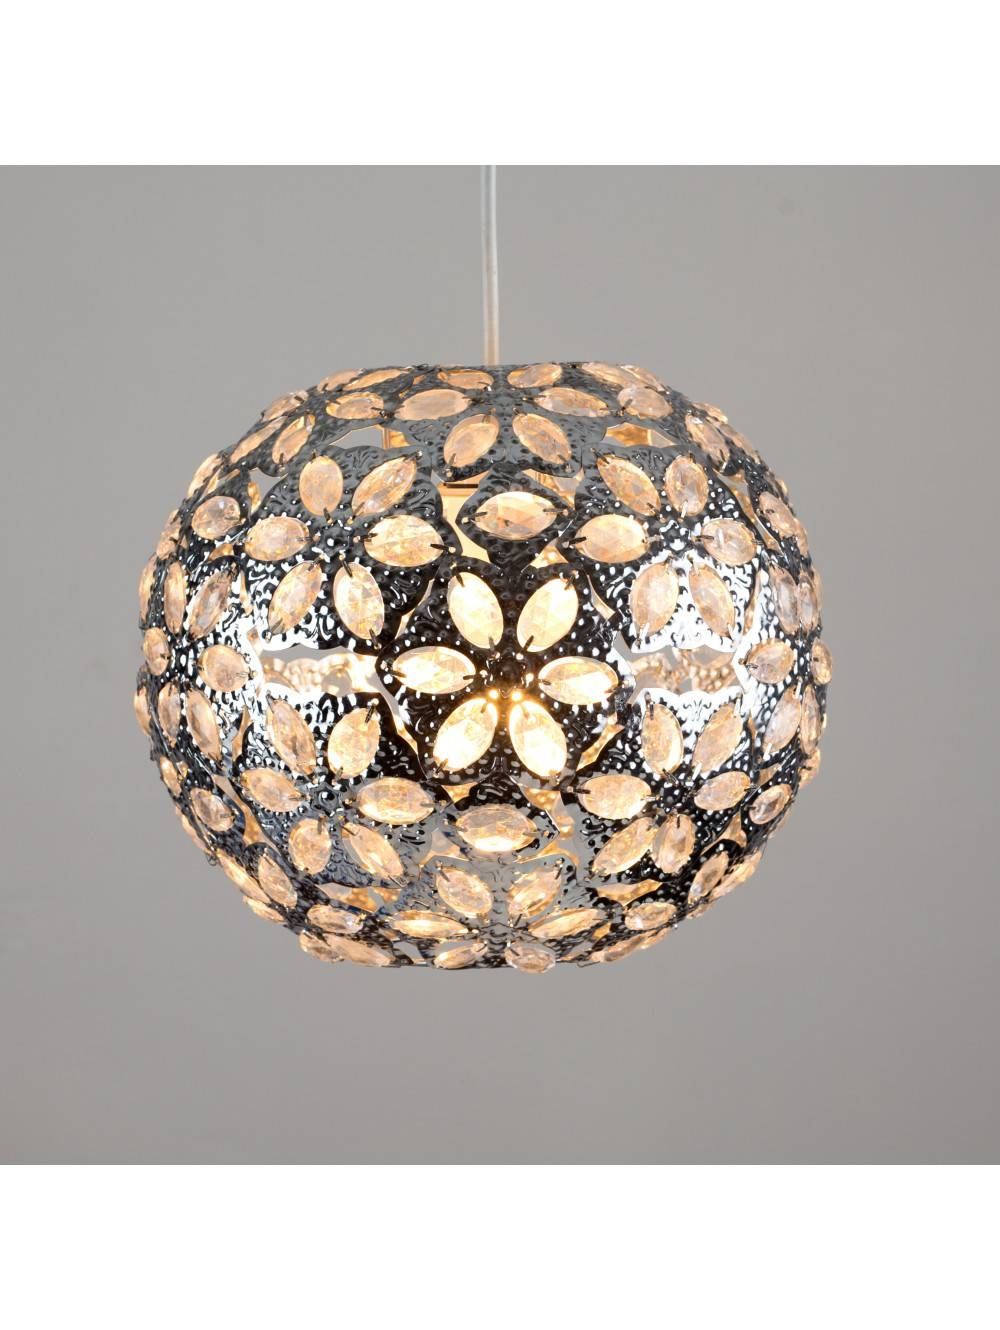 Moroccan Ceiling Lights Uk | Roselawnlutheran within Moroccan Style Lights Shades (Image 11 of 15)